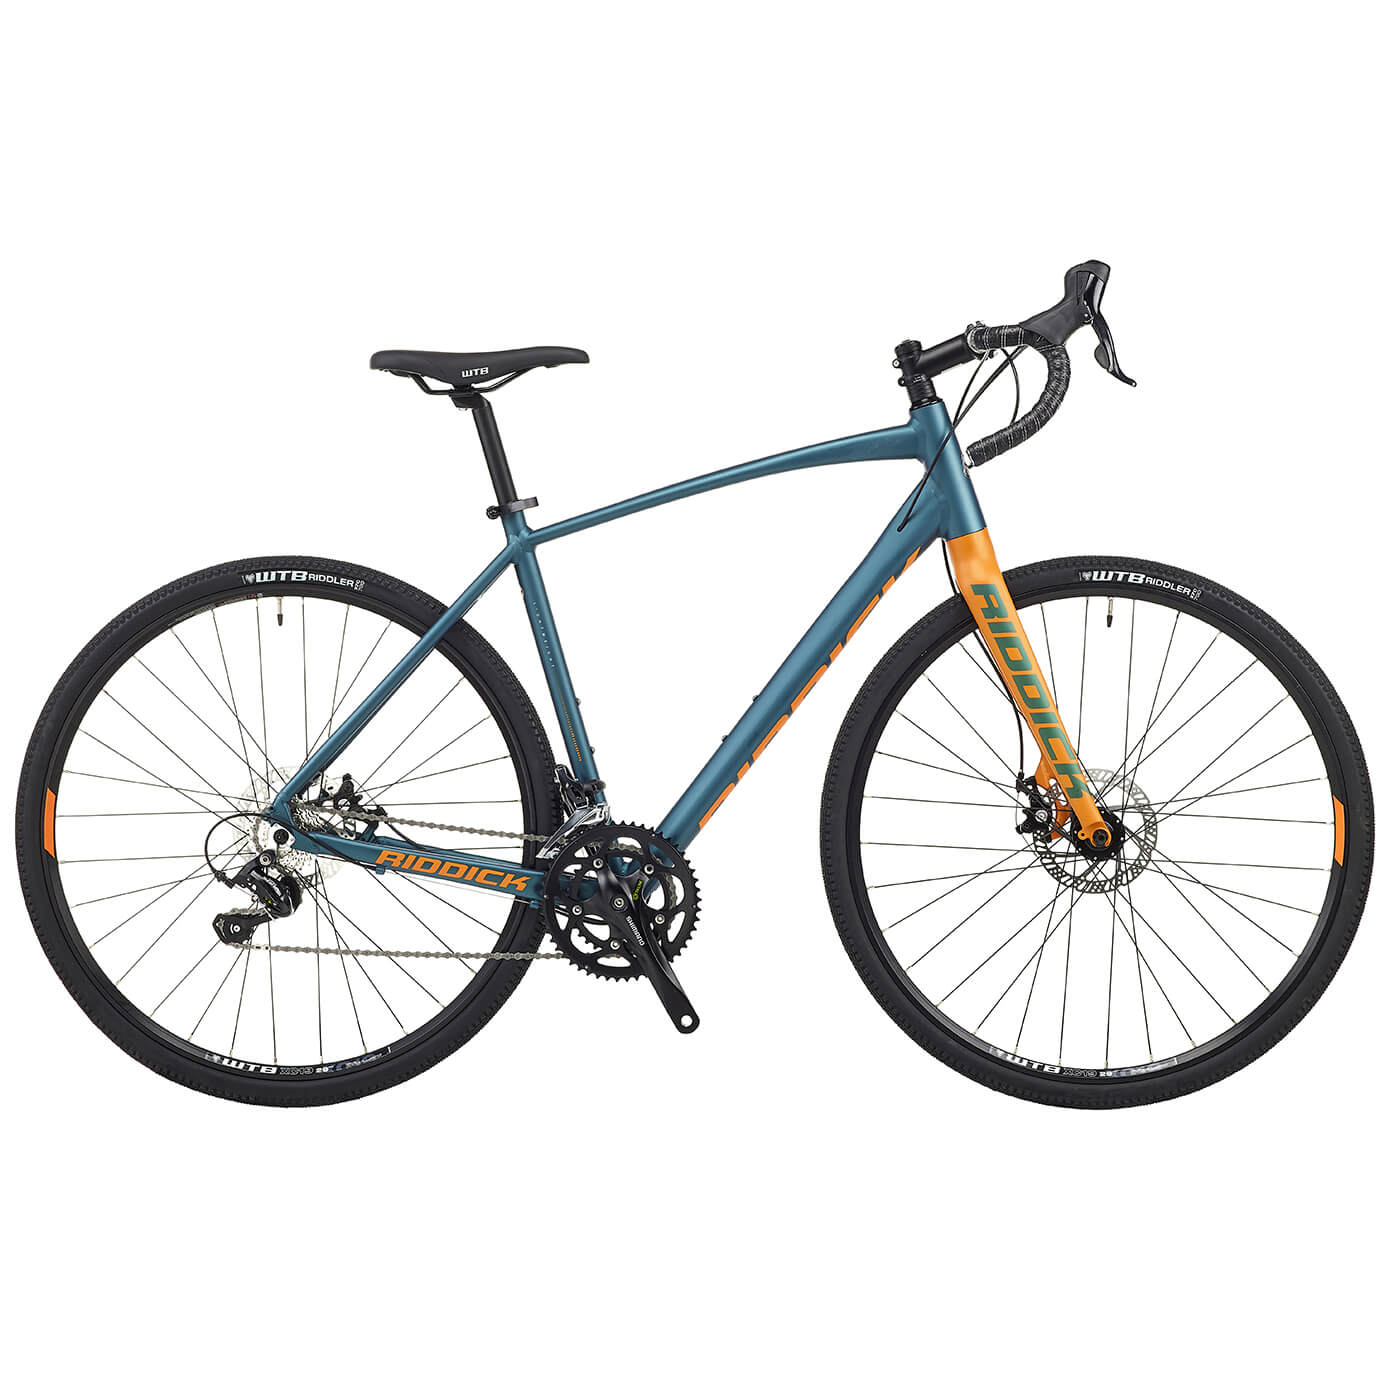 Riddick RD G4 Alloy Gravel Bike